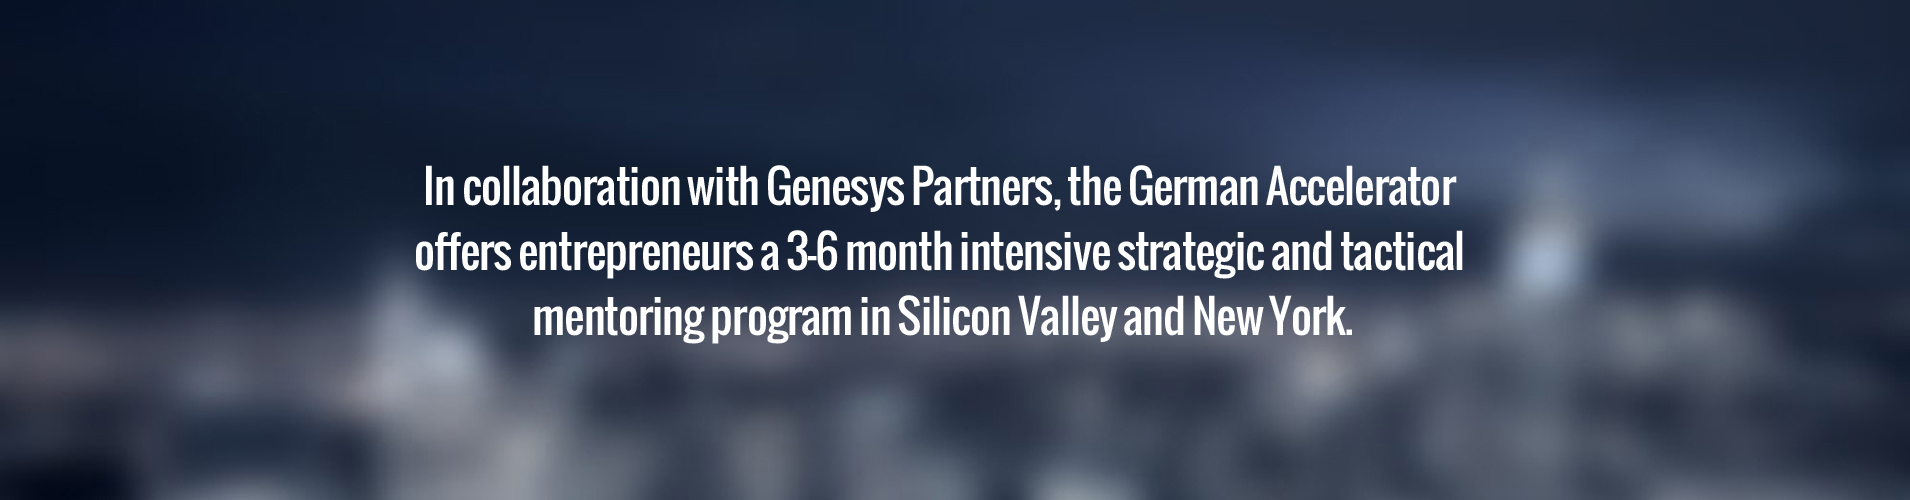 Genesys partners with the German Accelerator